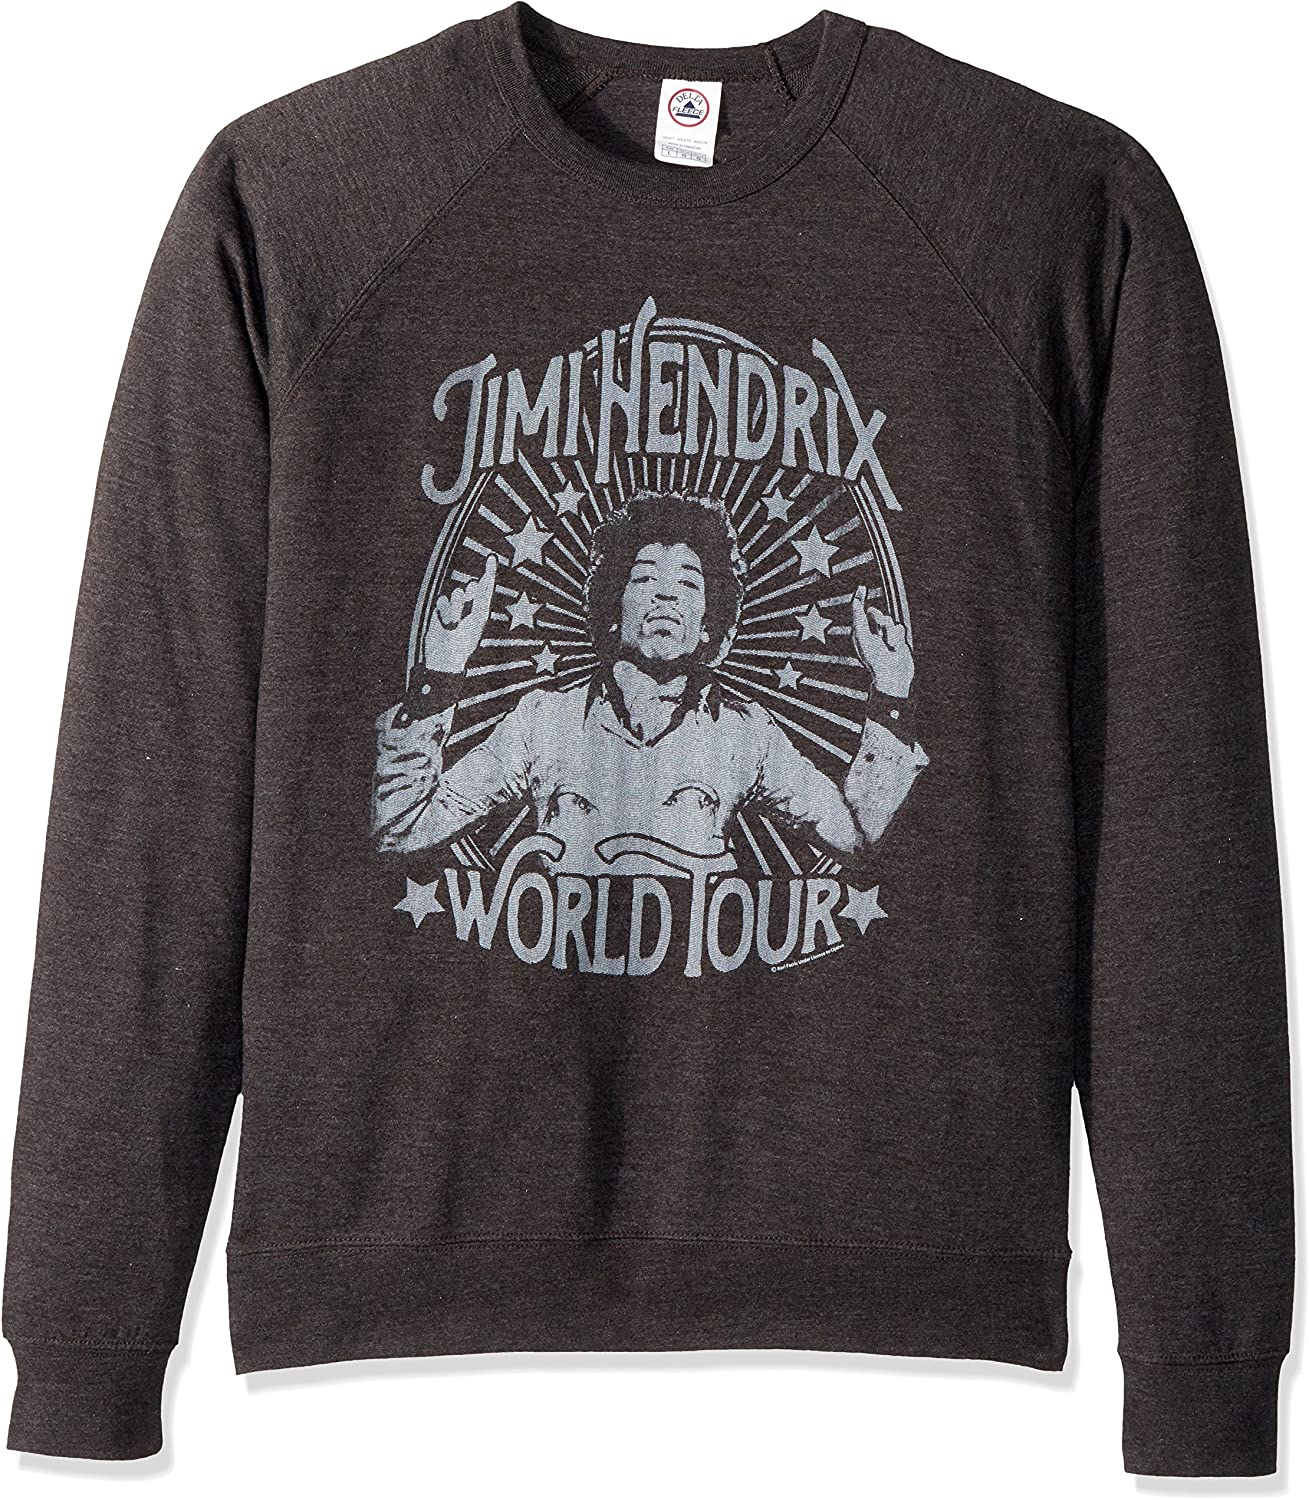 TALLA S. American Classics Jimi Hendrix World Tour Adult Short Sleeve T-Shirt-Camiseta Unisex Adulto Opaco